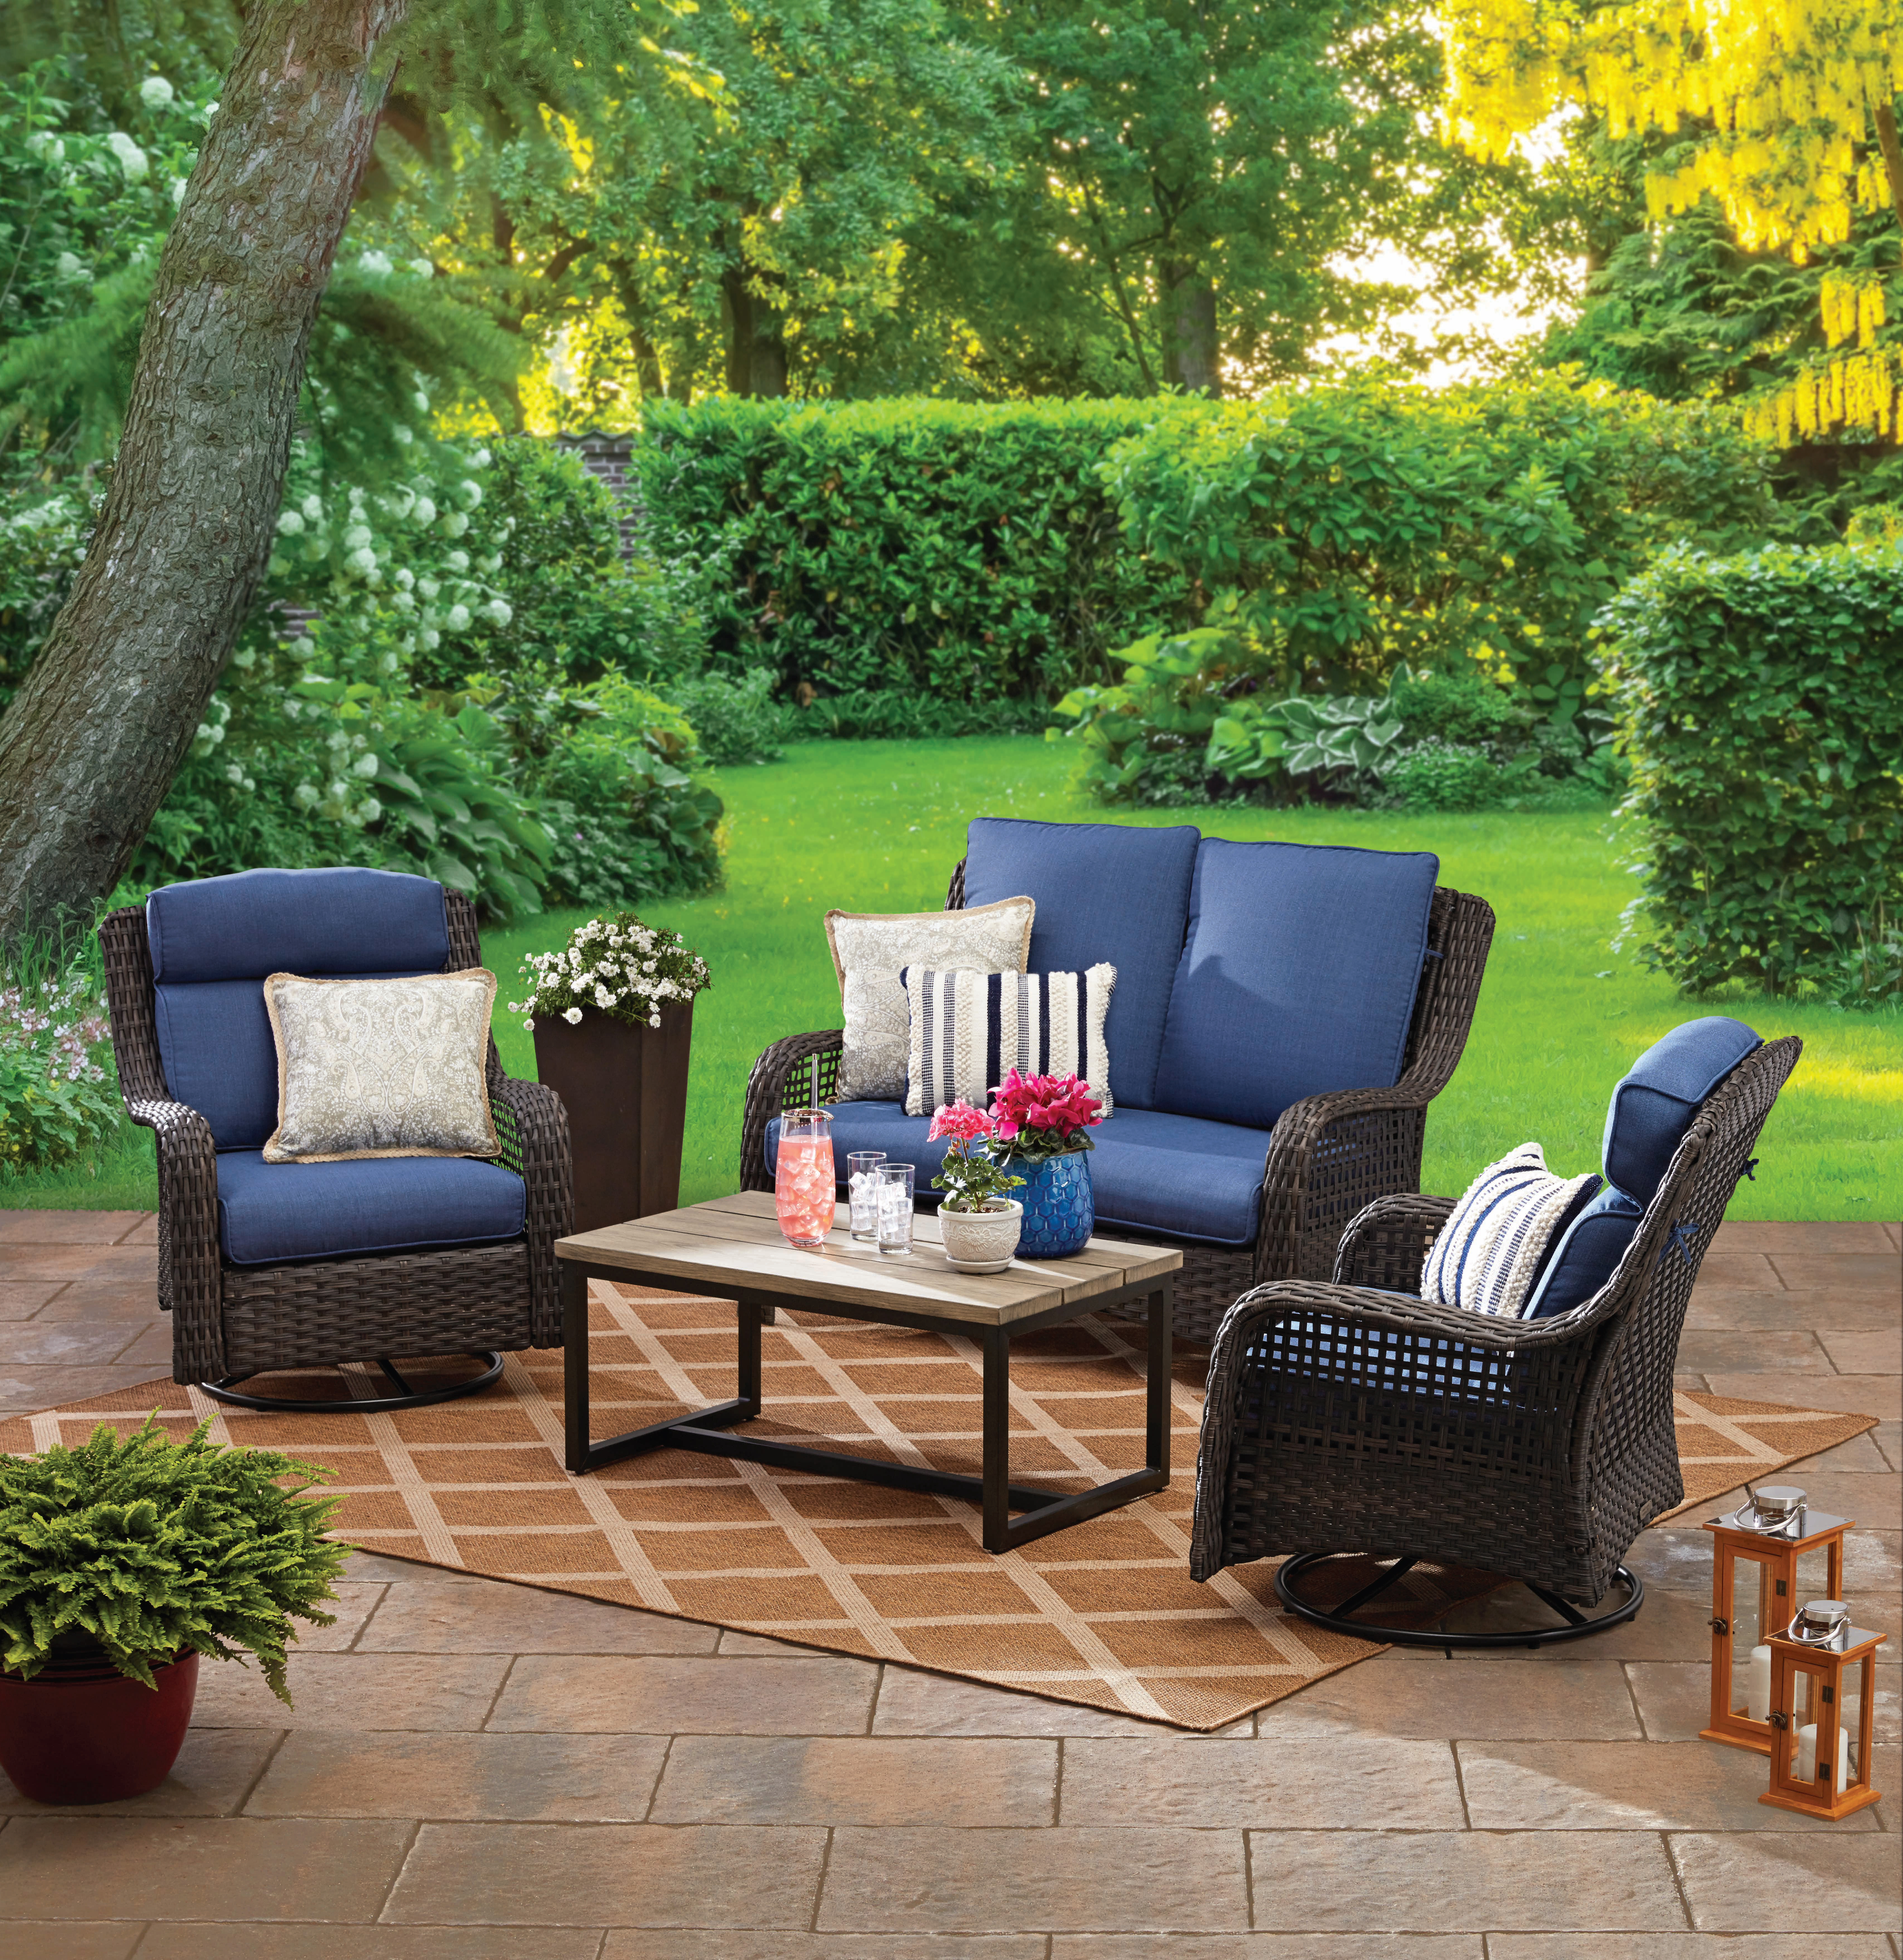 Fashionable Greta Living Patio Sectionals With Cushions Throughout Better Homes & Gardens Ravenbrooke 4 Piece Patio (View 7 of 20)